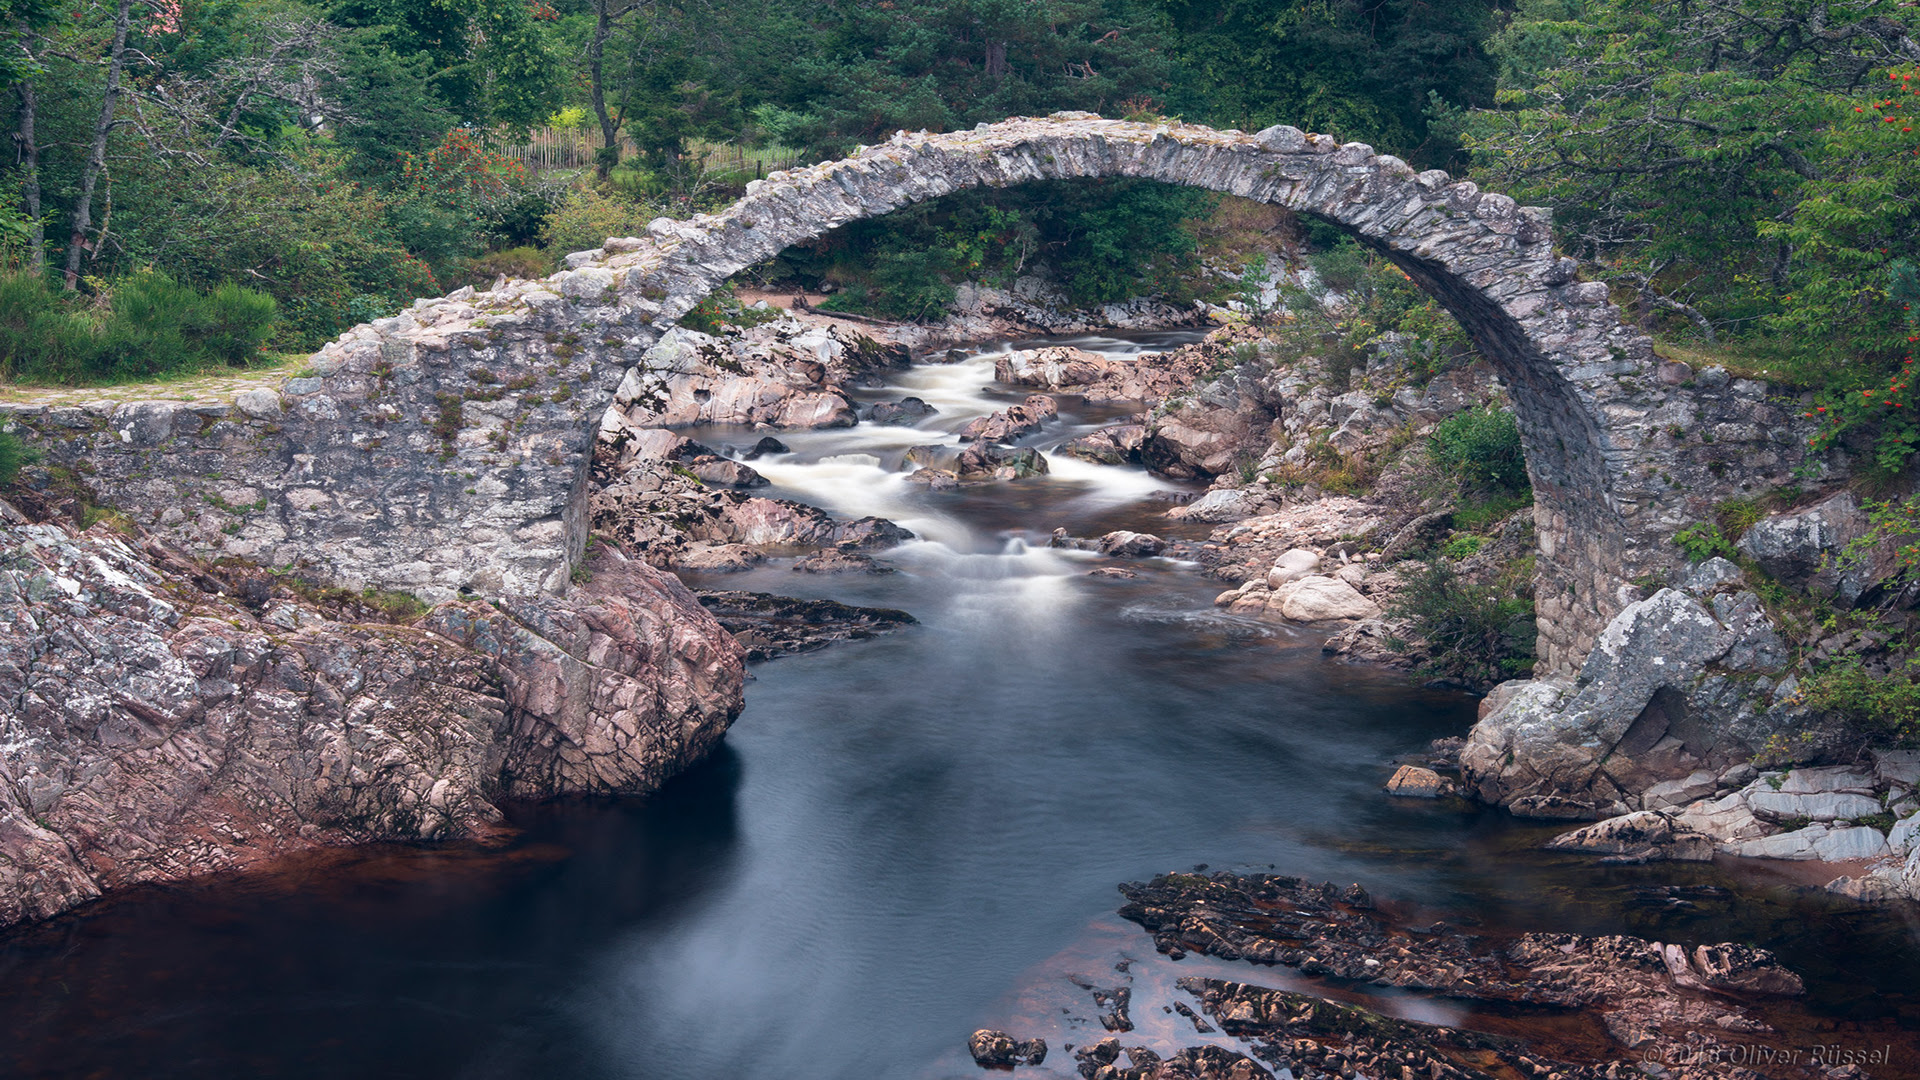 oldest stone bridge in the Highlands [1920x1080]